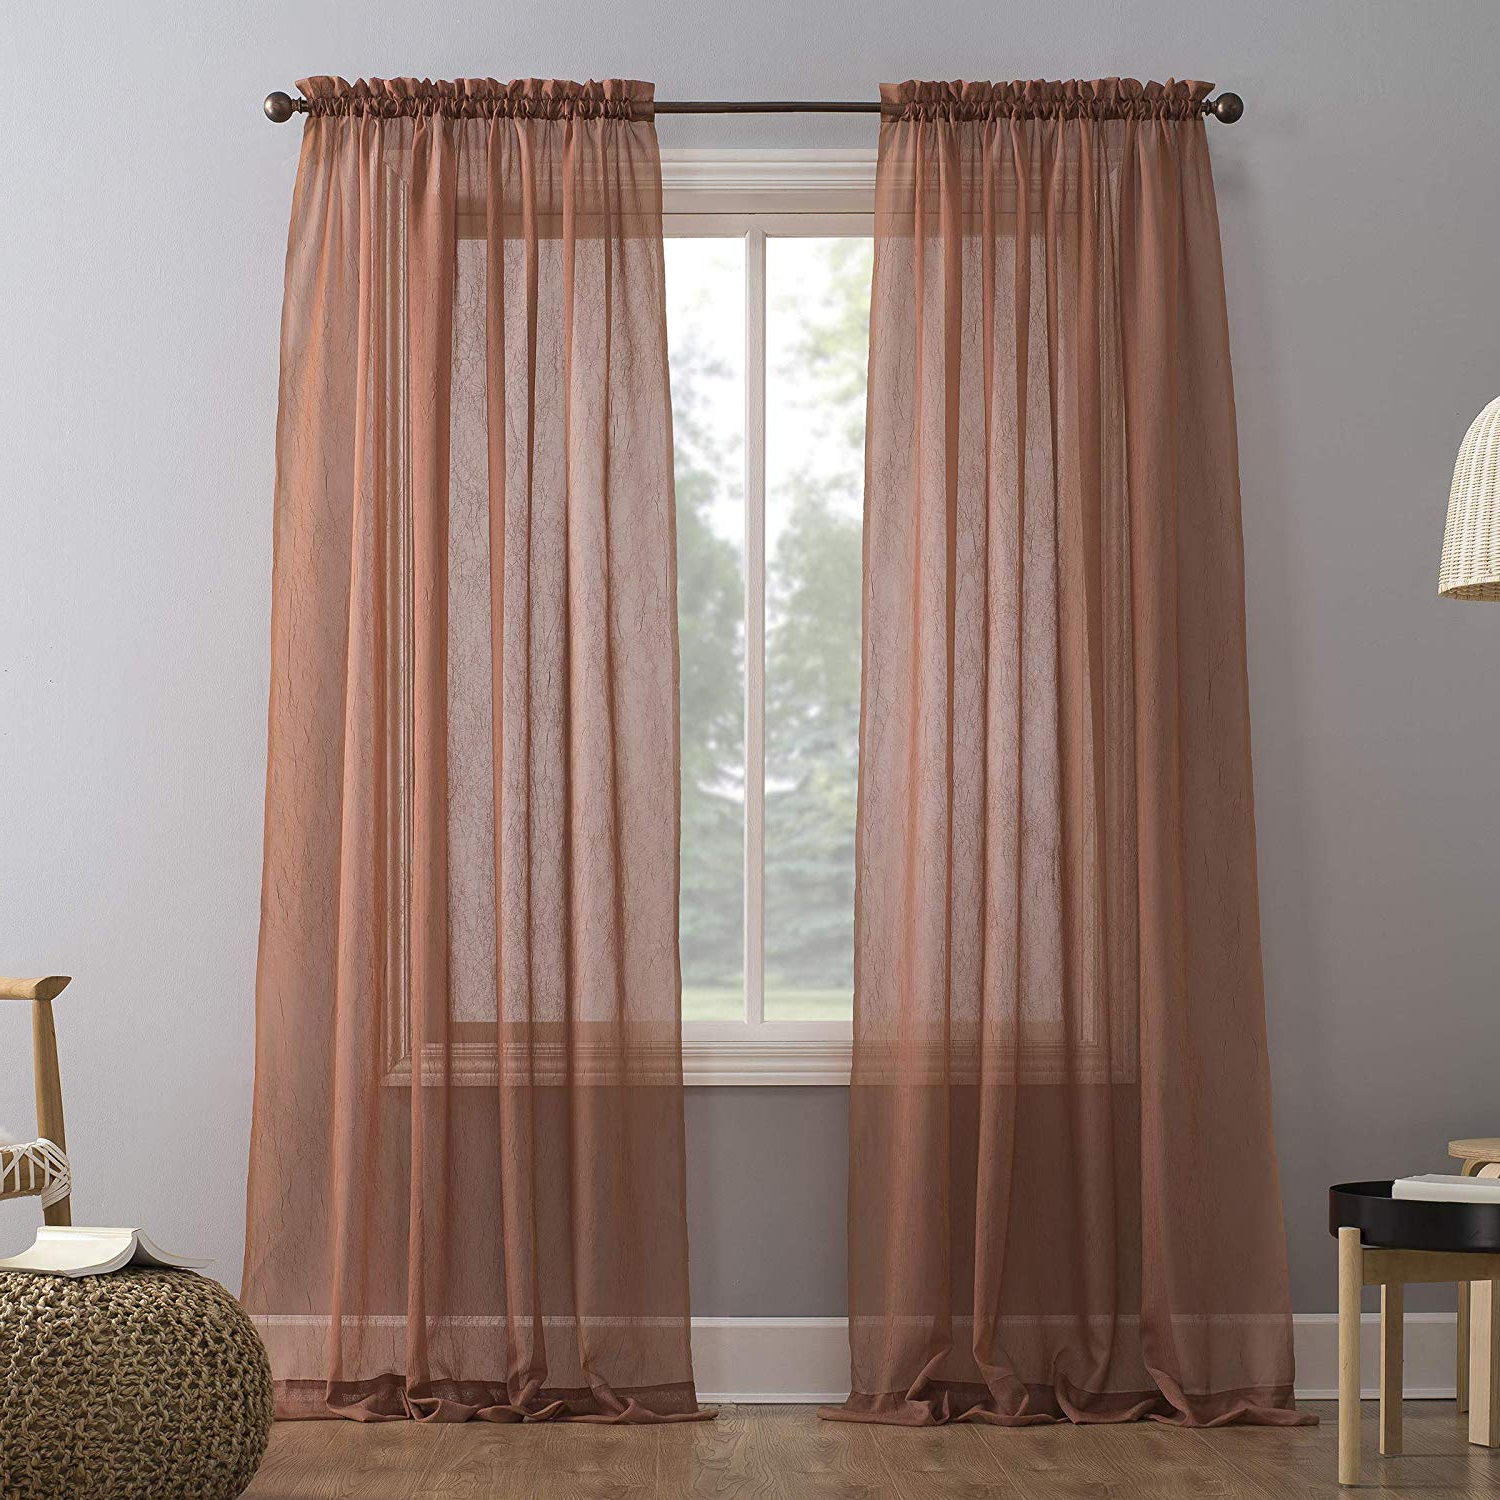 Erica Sheer Crushed Voile Single Curtain Panels Intended For 2020 No (View 5 of 20)